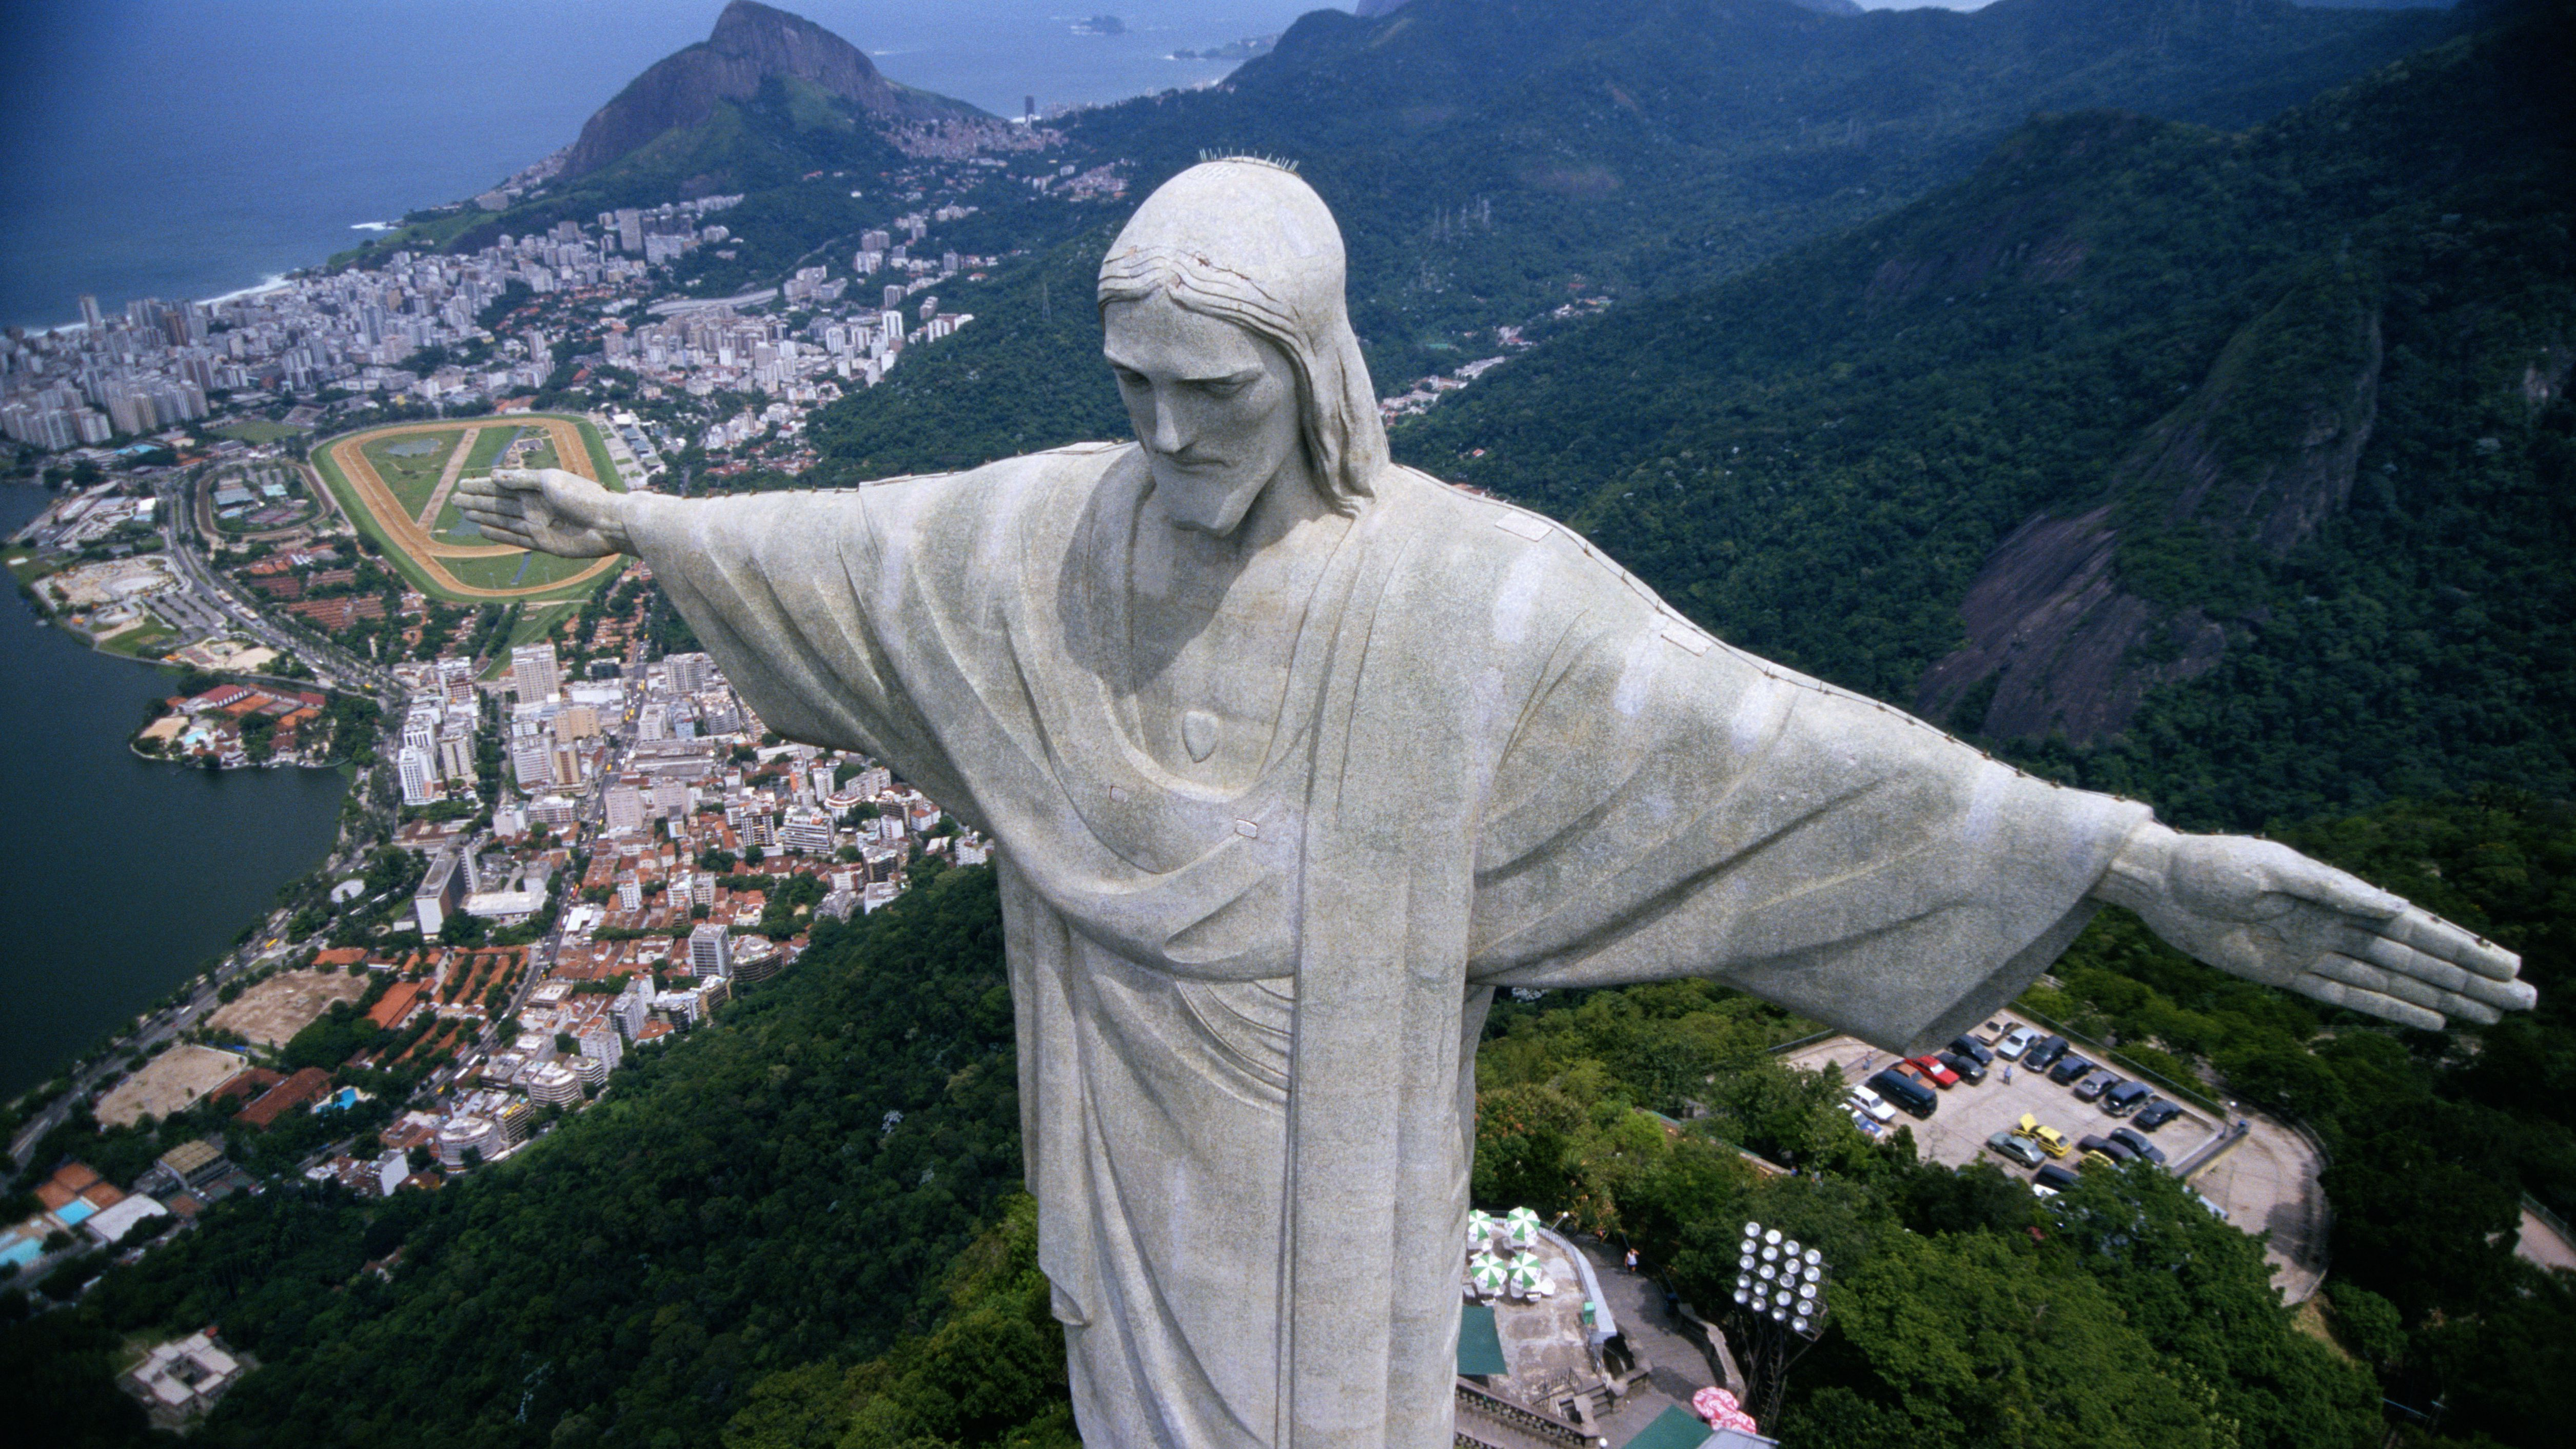 5 Reasons Why Christ the Redeemer Statue Is So Popular